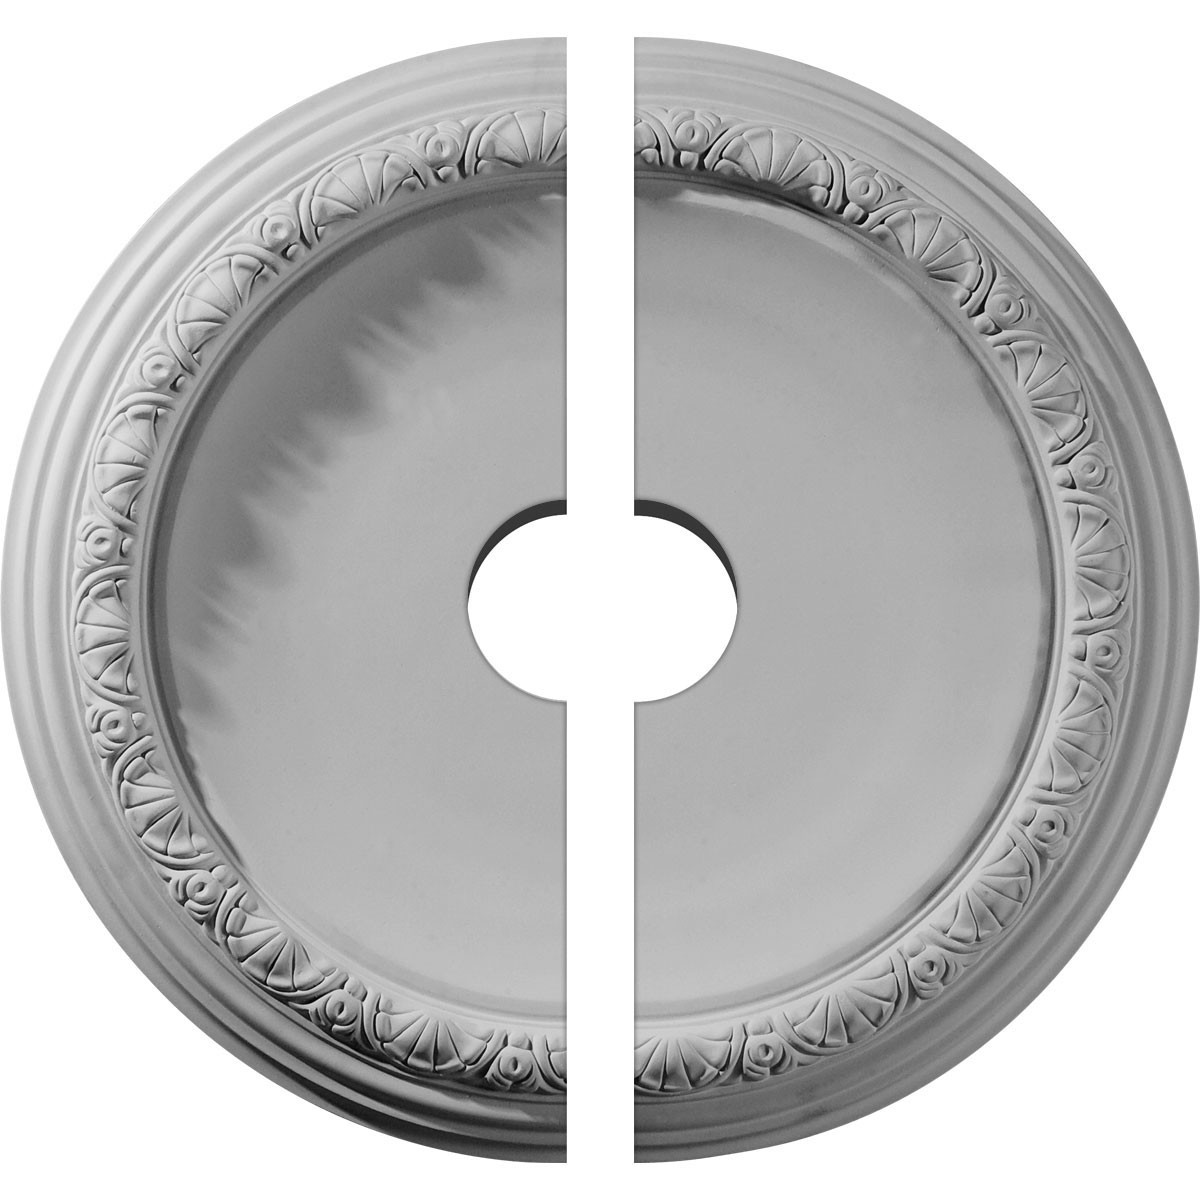 """EM-CM19CA2-03500 - 19 1/2""""OD x 3 1/2""""ID x 1 3/4""""P Carlsbad Ceiling Medallion, Two Piece (Fits Canopies up to 14 1/4"""")"""